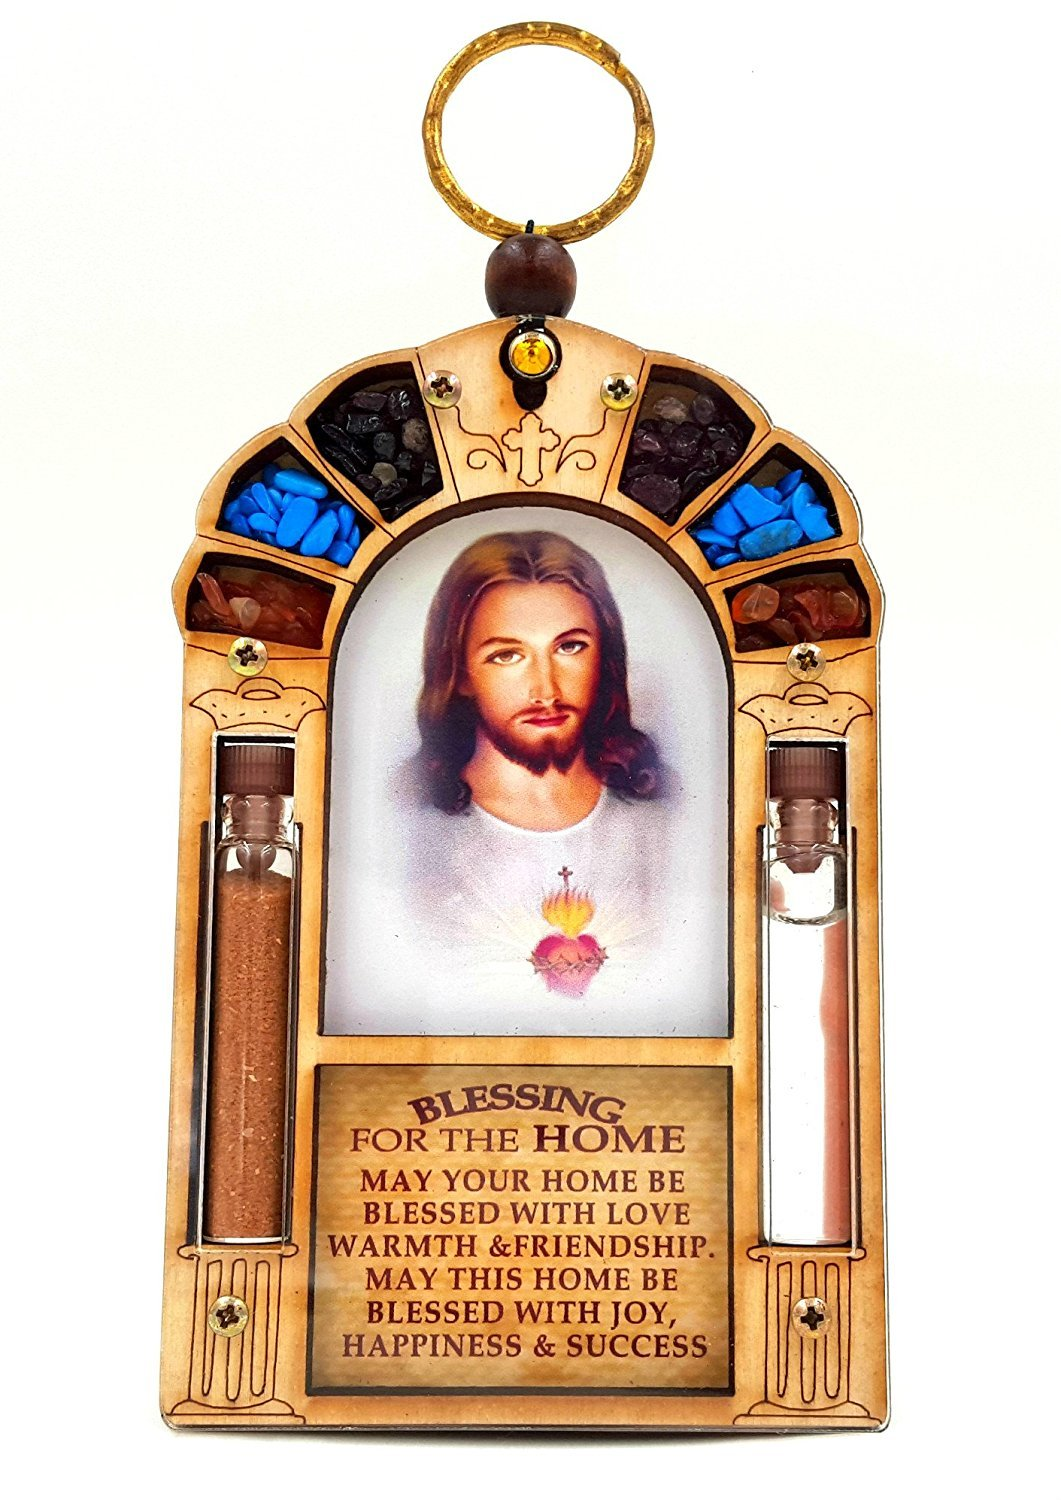 Home Blessing Wall Hanging Sacred Heart of Jesus Catholic Gift with Holy Water & Soil Talisman4U LAJB-1